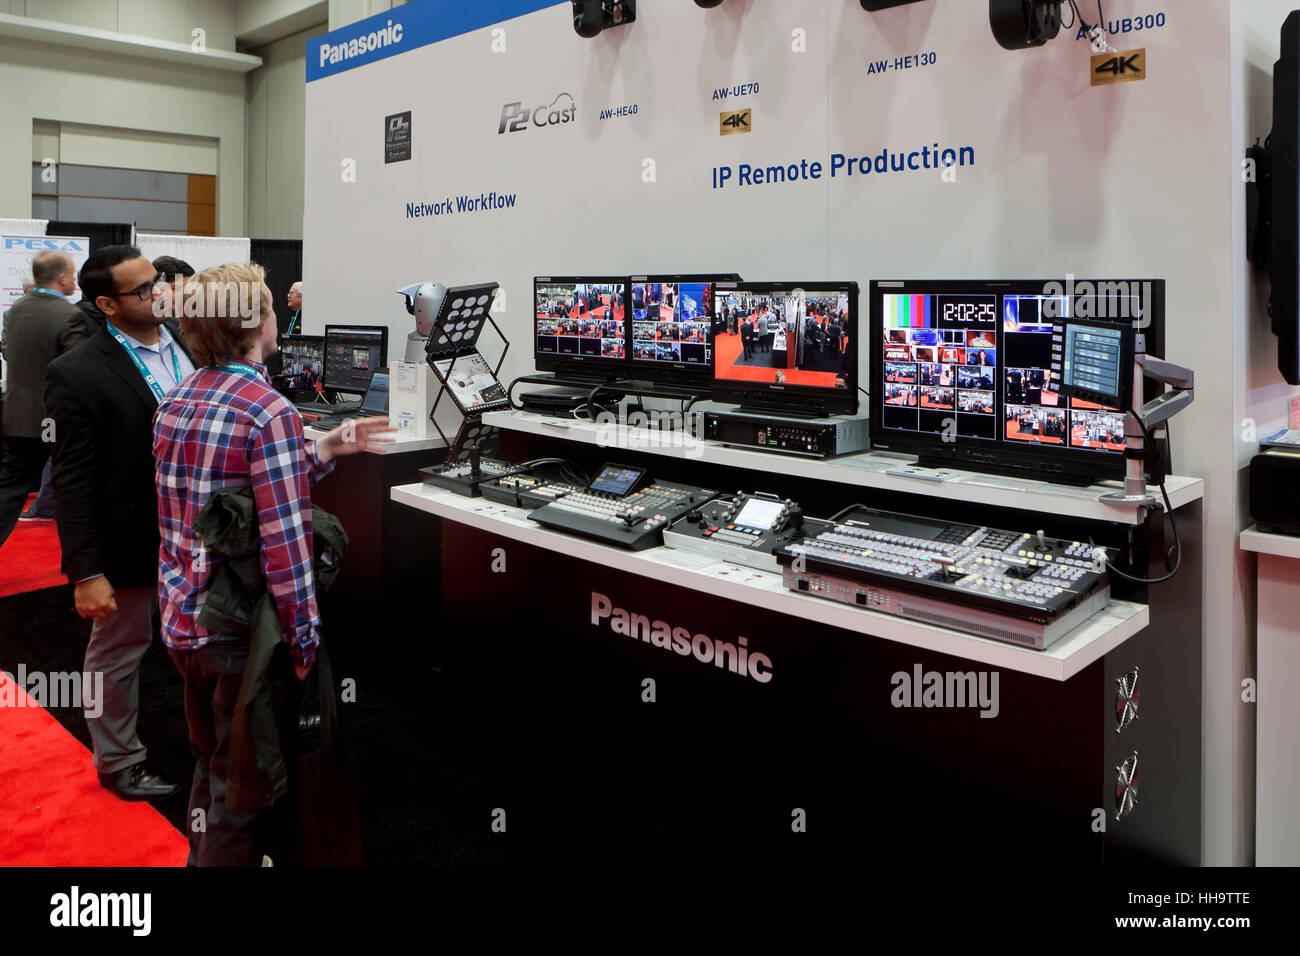 Panasonic video recording and editing system display at a trade show - USA - Stock Image